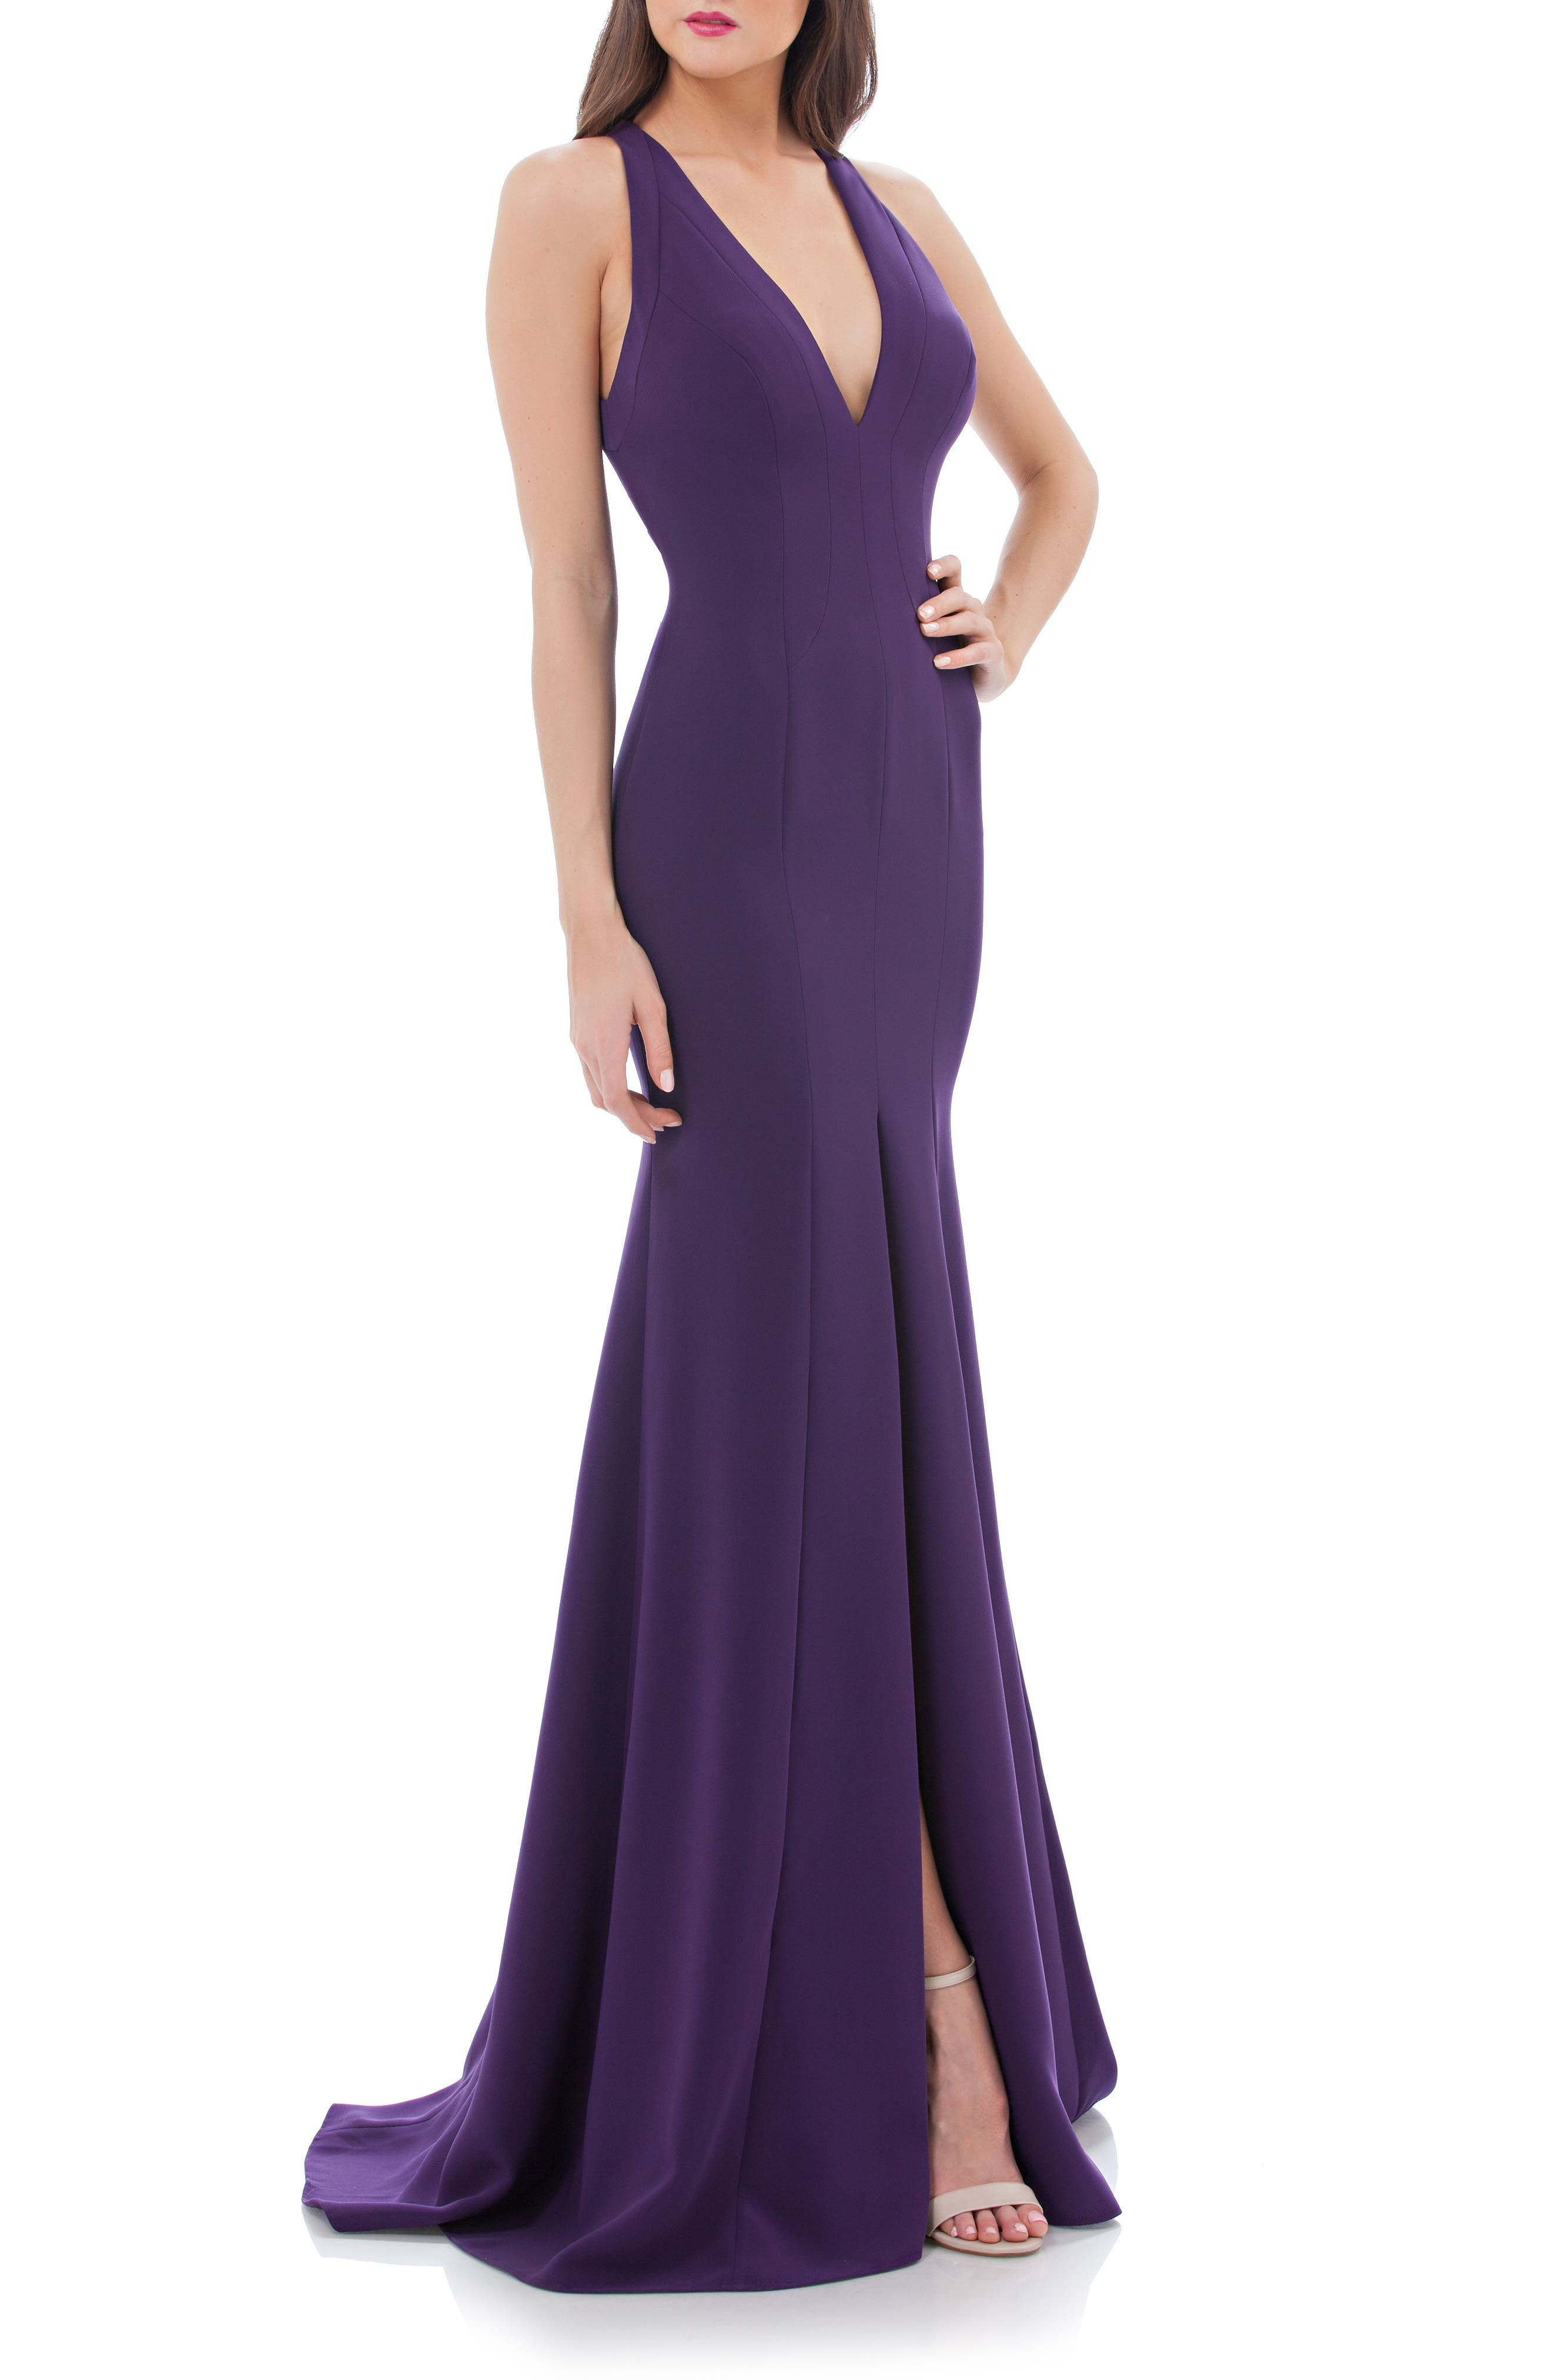 V-Neck Halter Style Gown,                             Main thumbnail 1, color,                             506